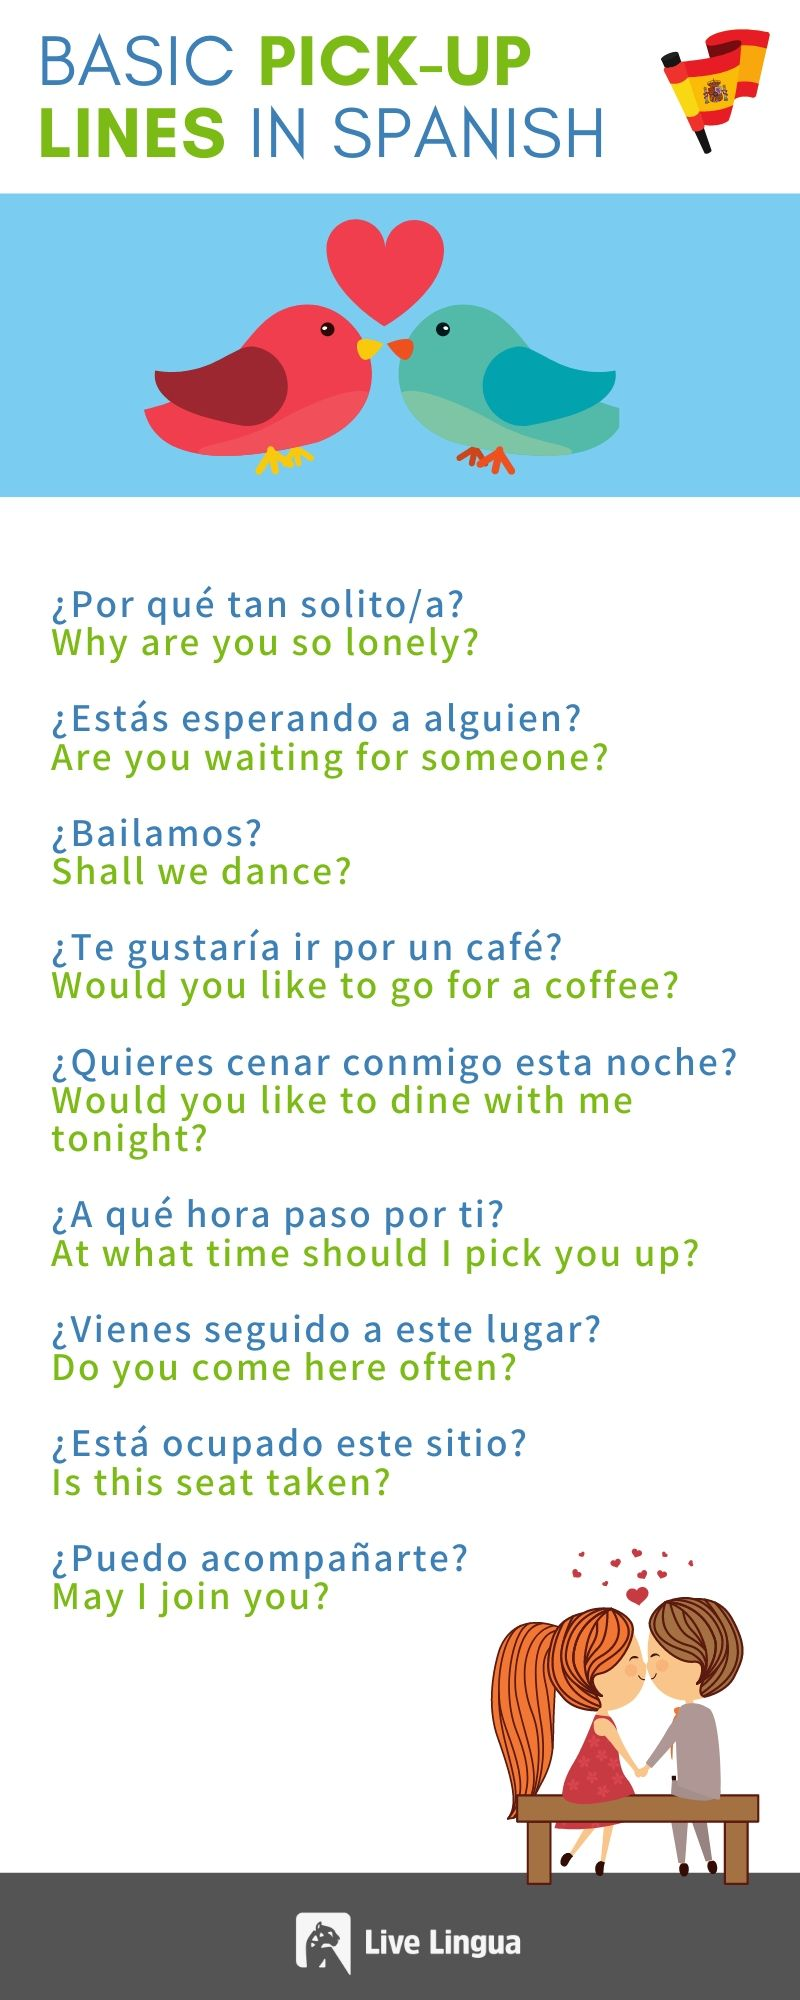 spanish pick up lines